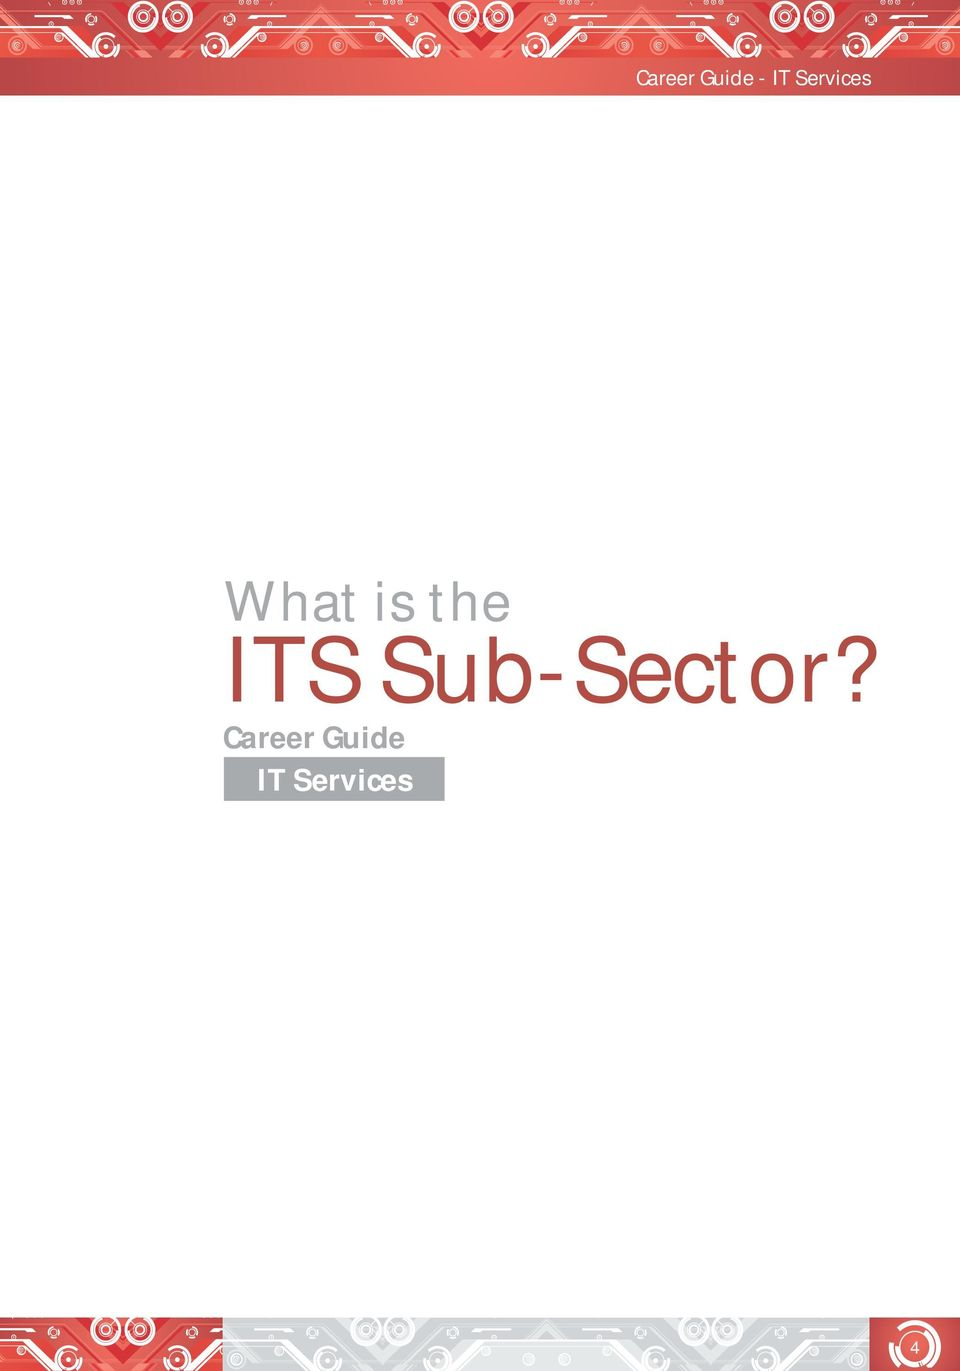 ITS Sub-Sector?